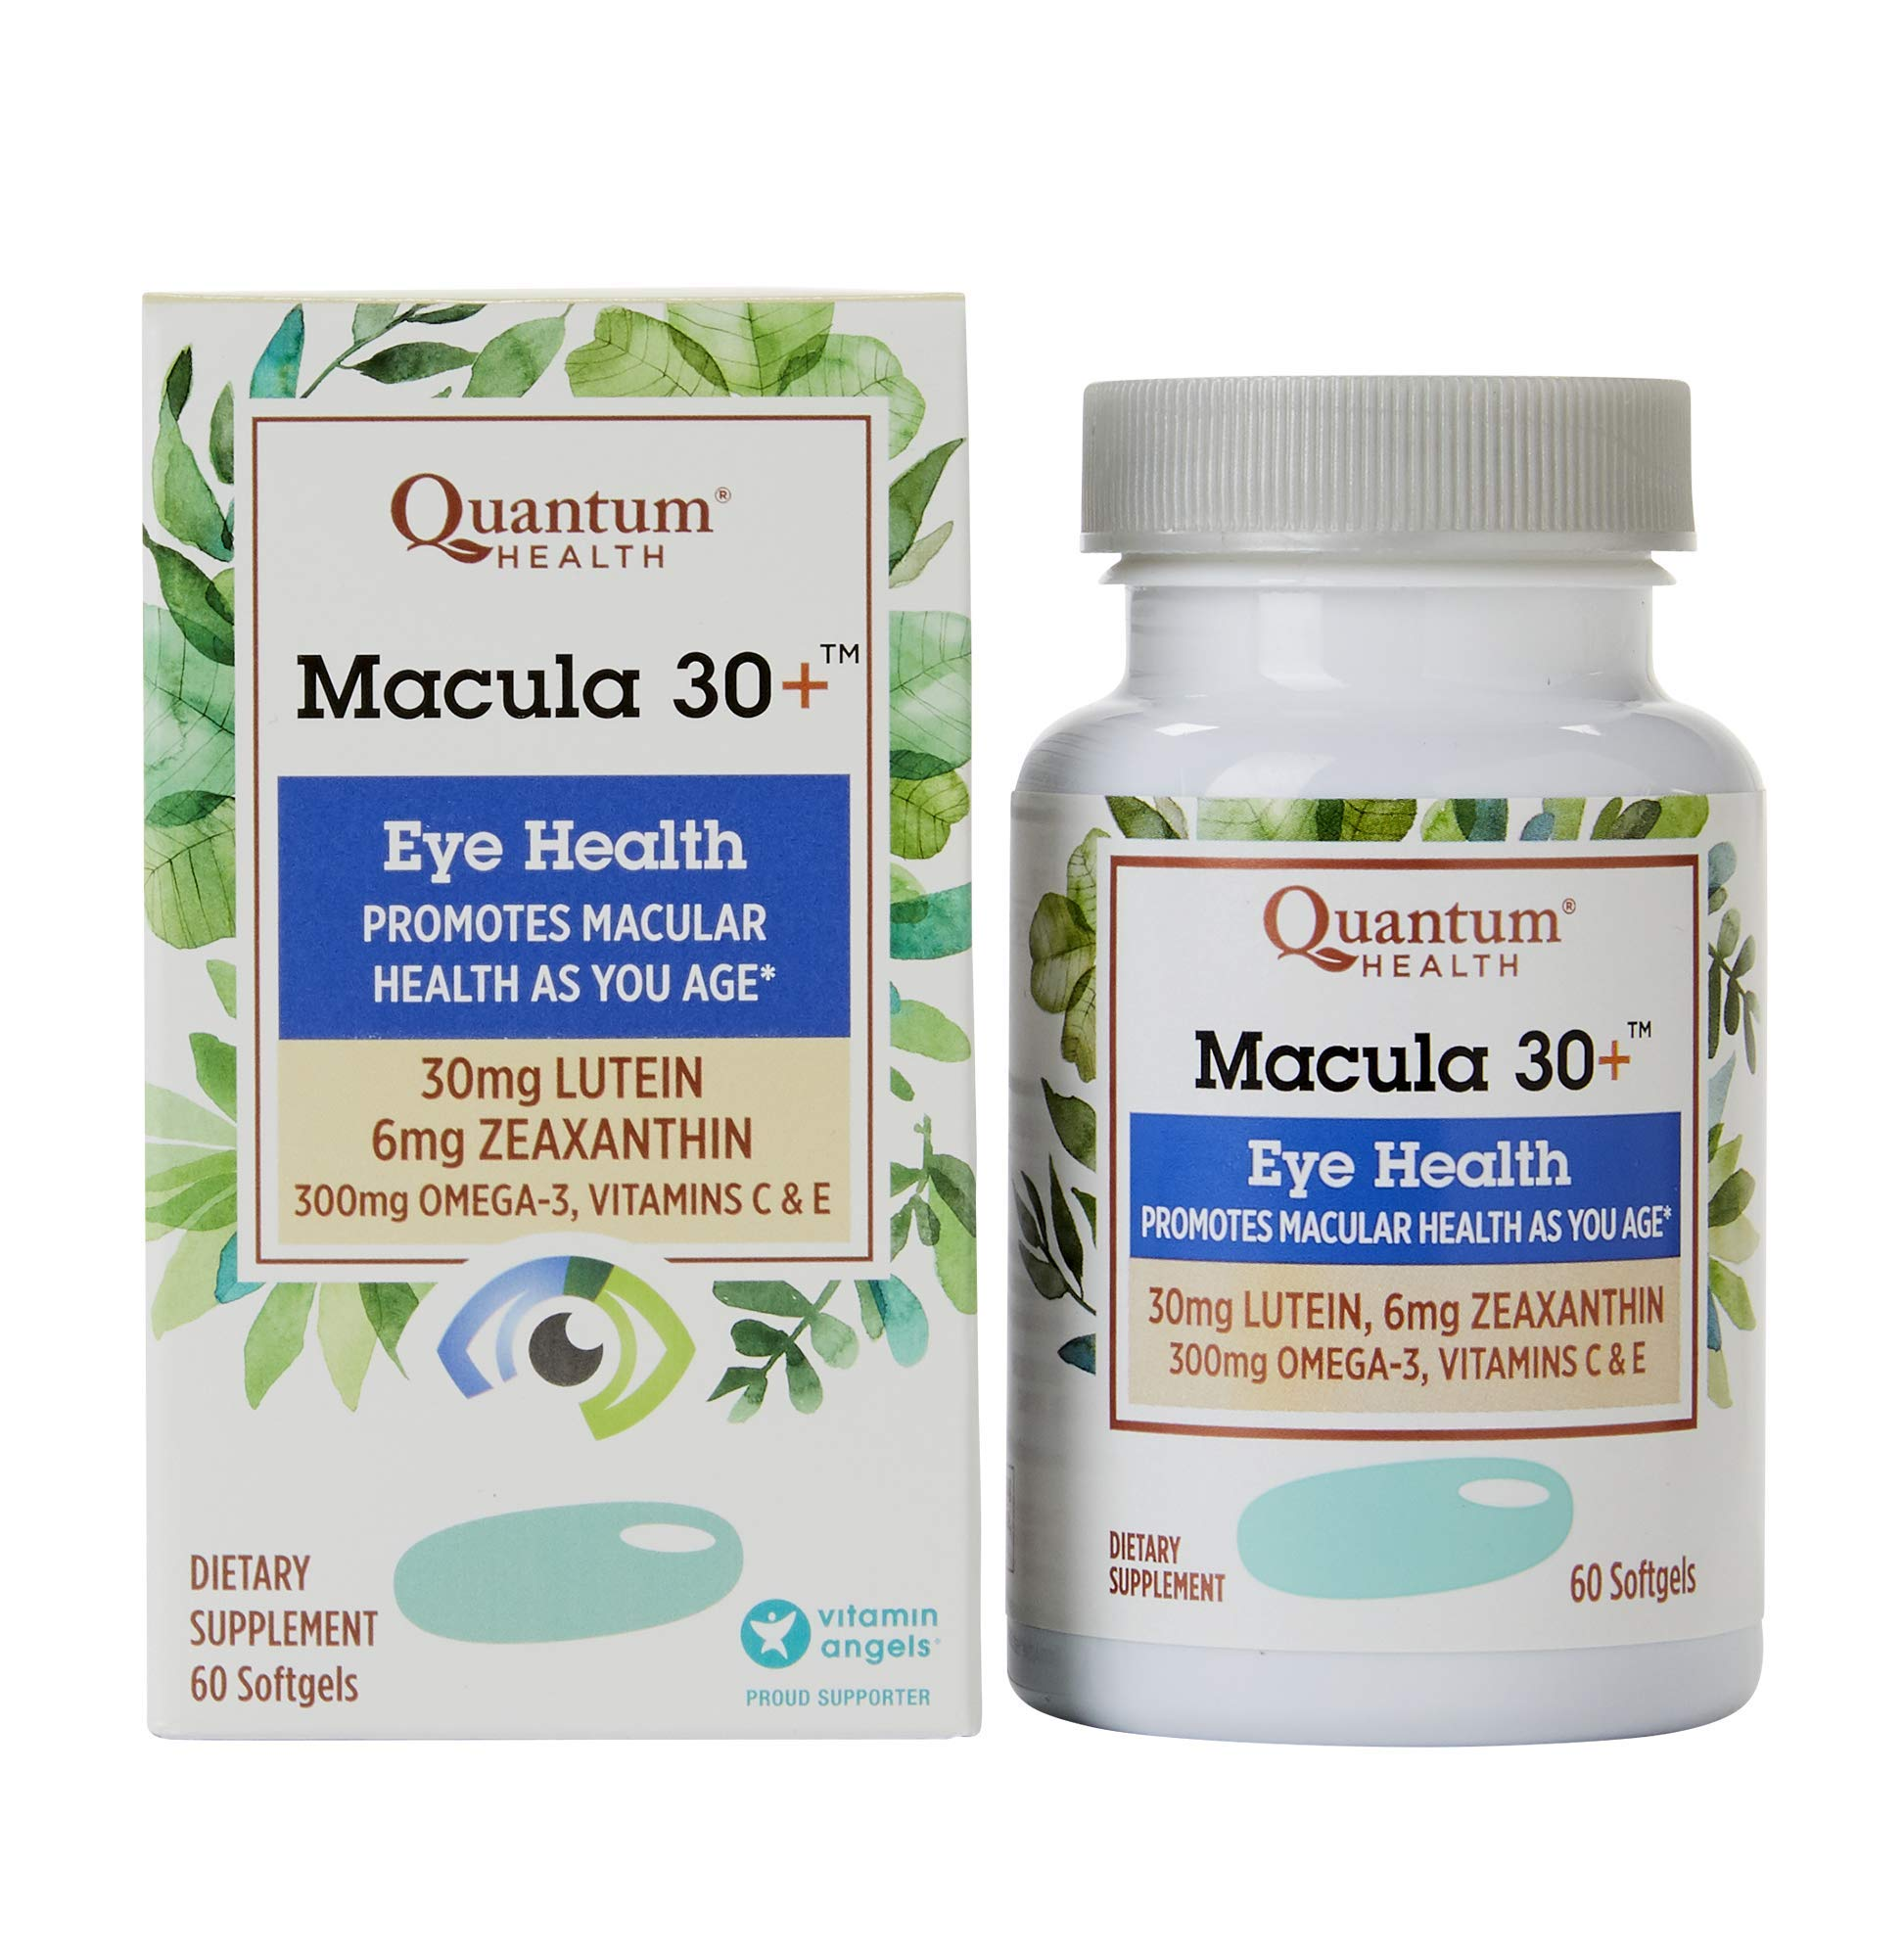 Quantum Health Macula 30+ Softgels, Eye Supplement, Macular Health - Lutein, Zeaxanthin, Vitamin C and E, Omega 3, Zinc - 60 Count by Quantum